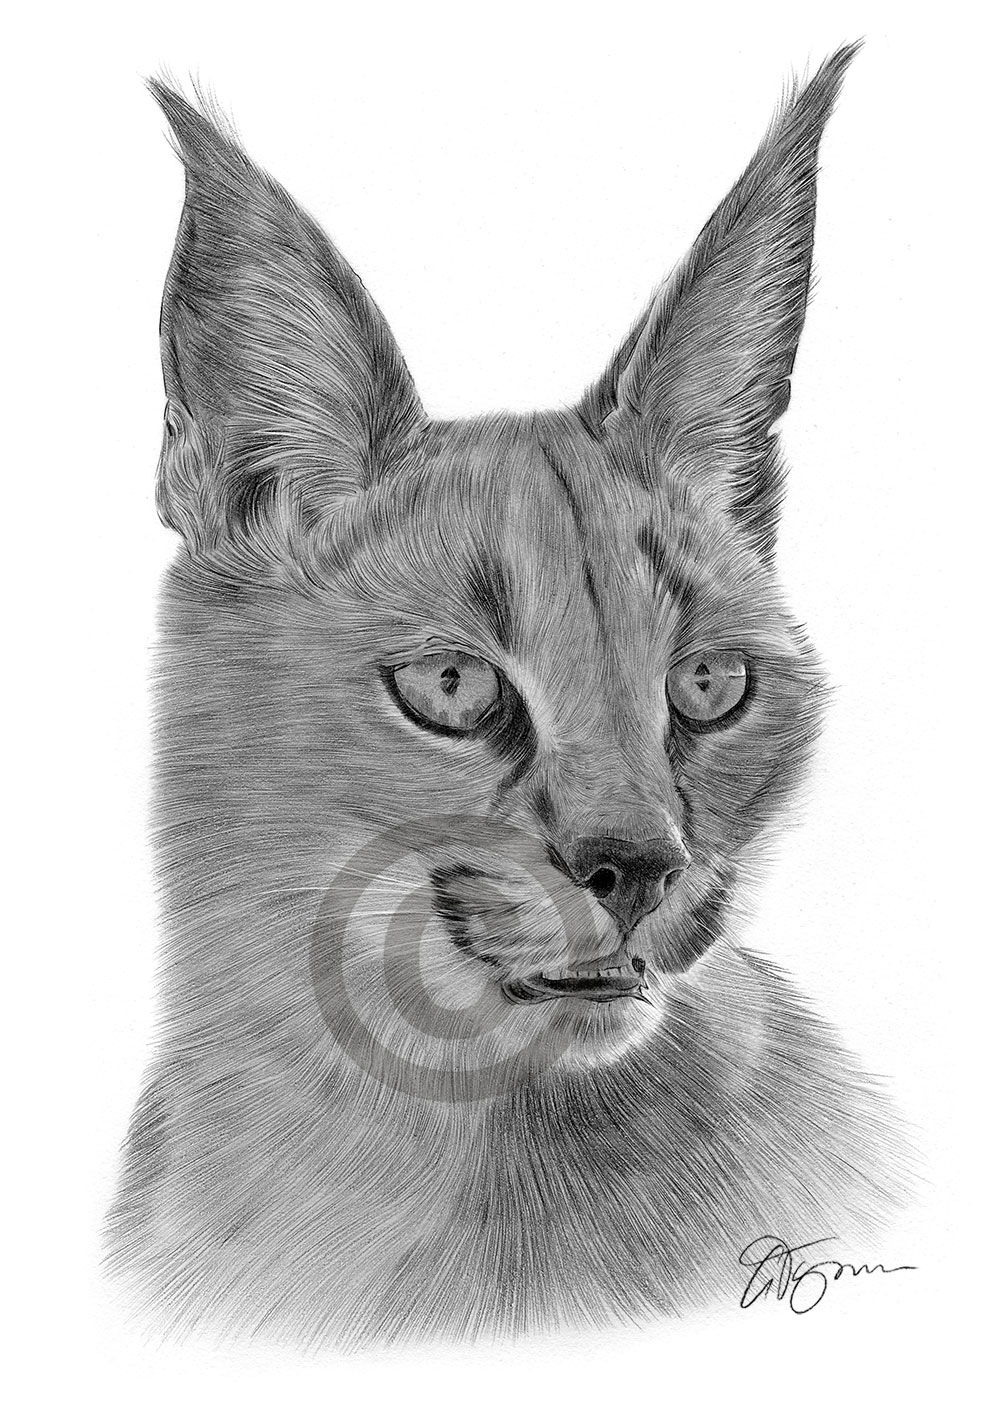 Caracal pencil drawing by artist Gary Tymon